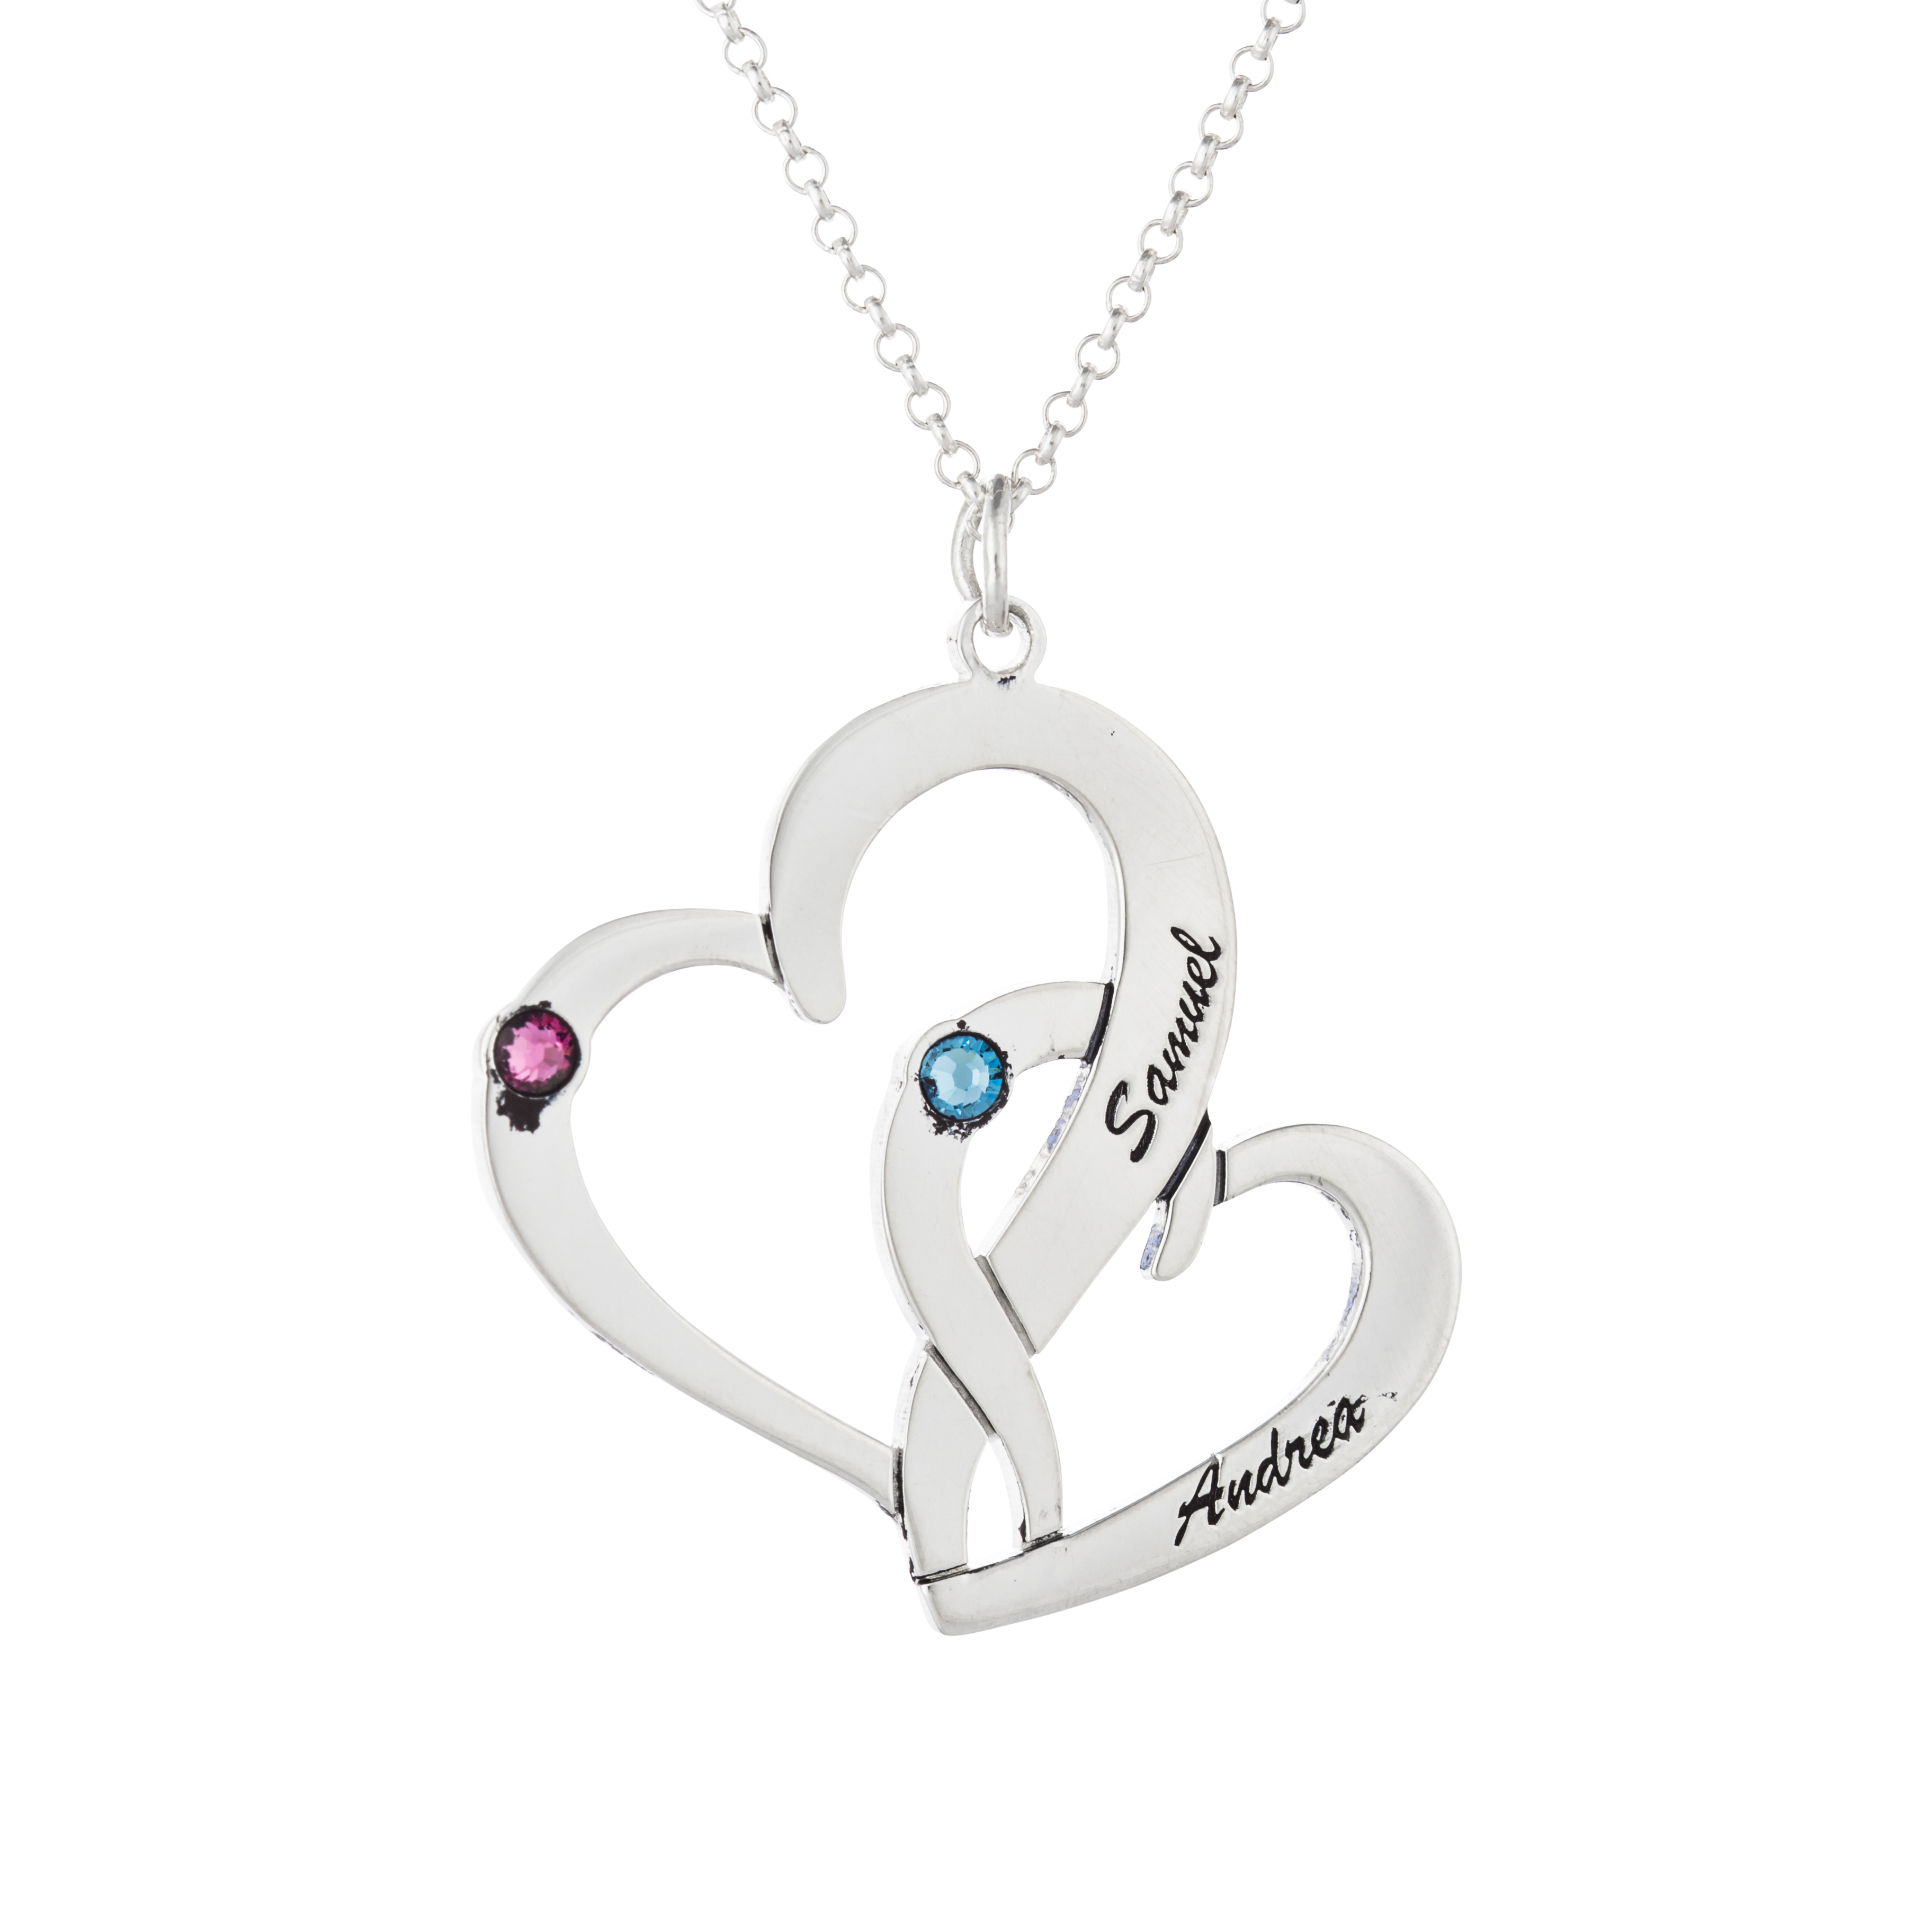 Giftnamenecklace interlocking two hearts necklace interlocking two hearts necklace aloadofball Image collections